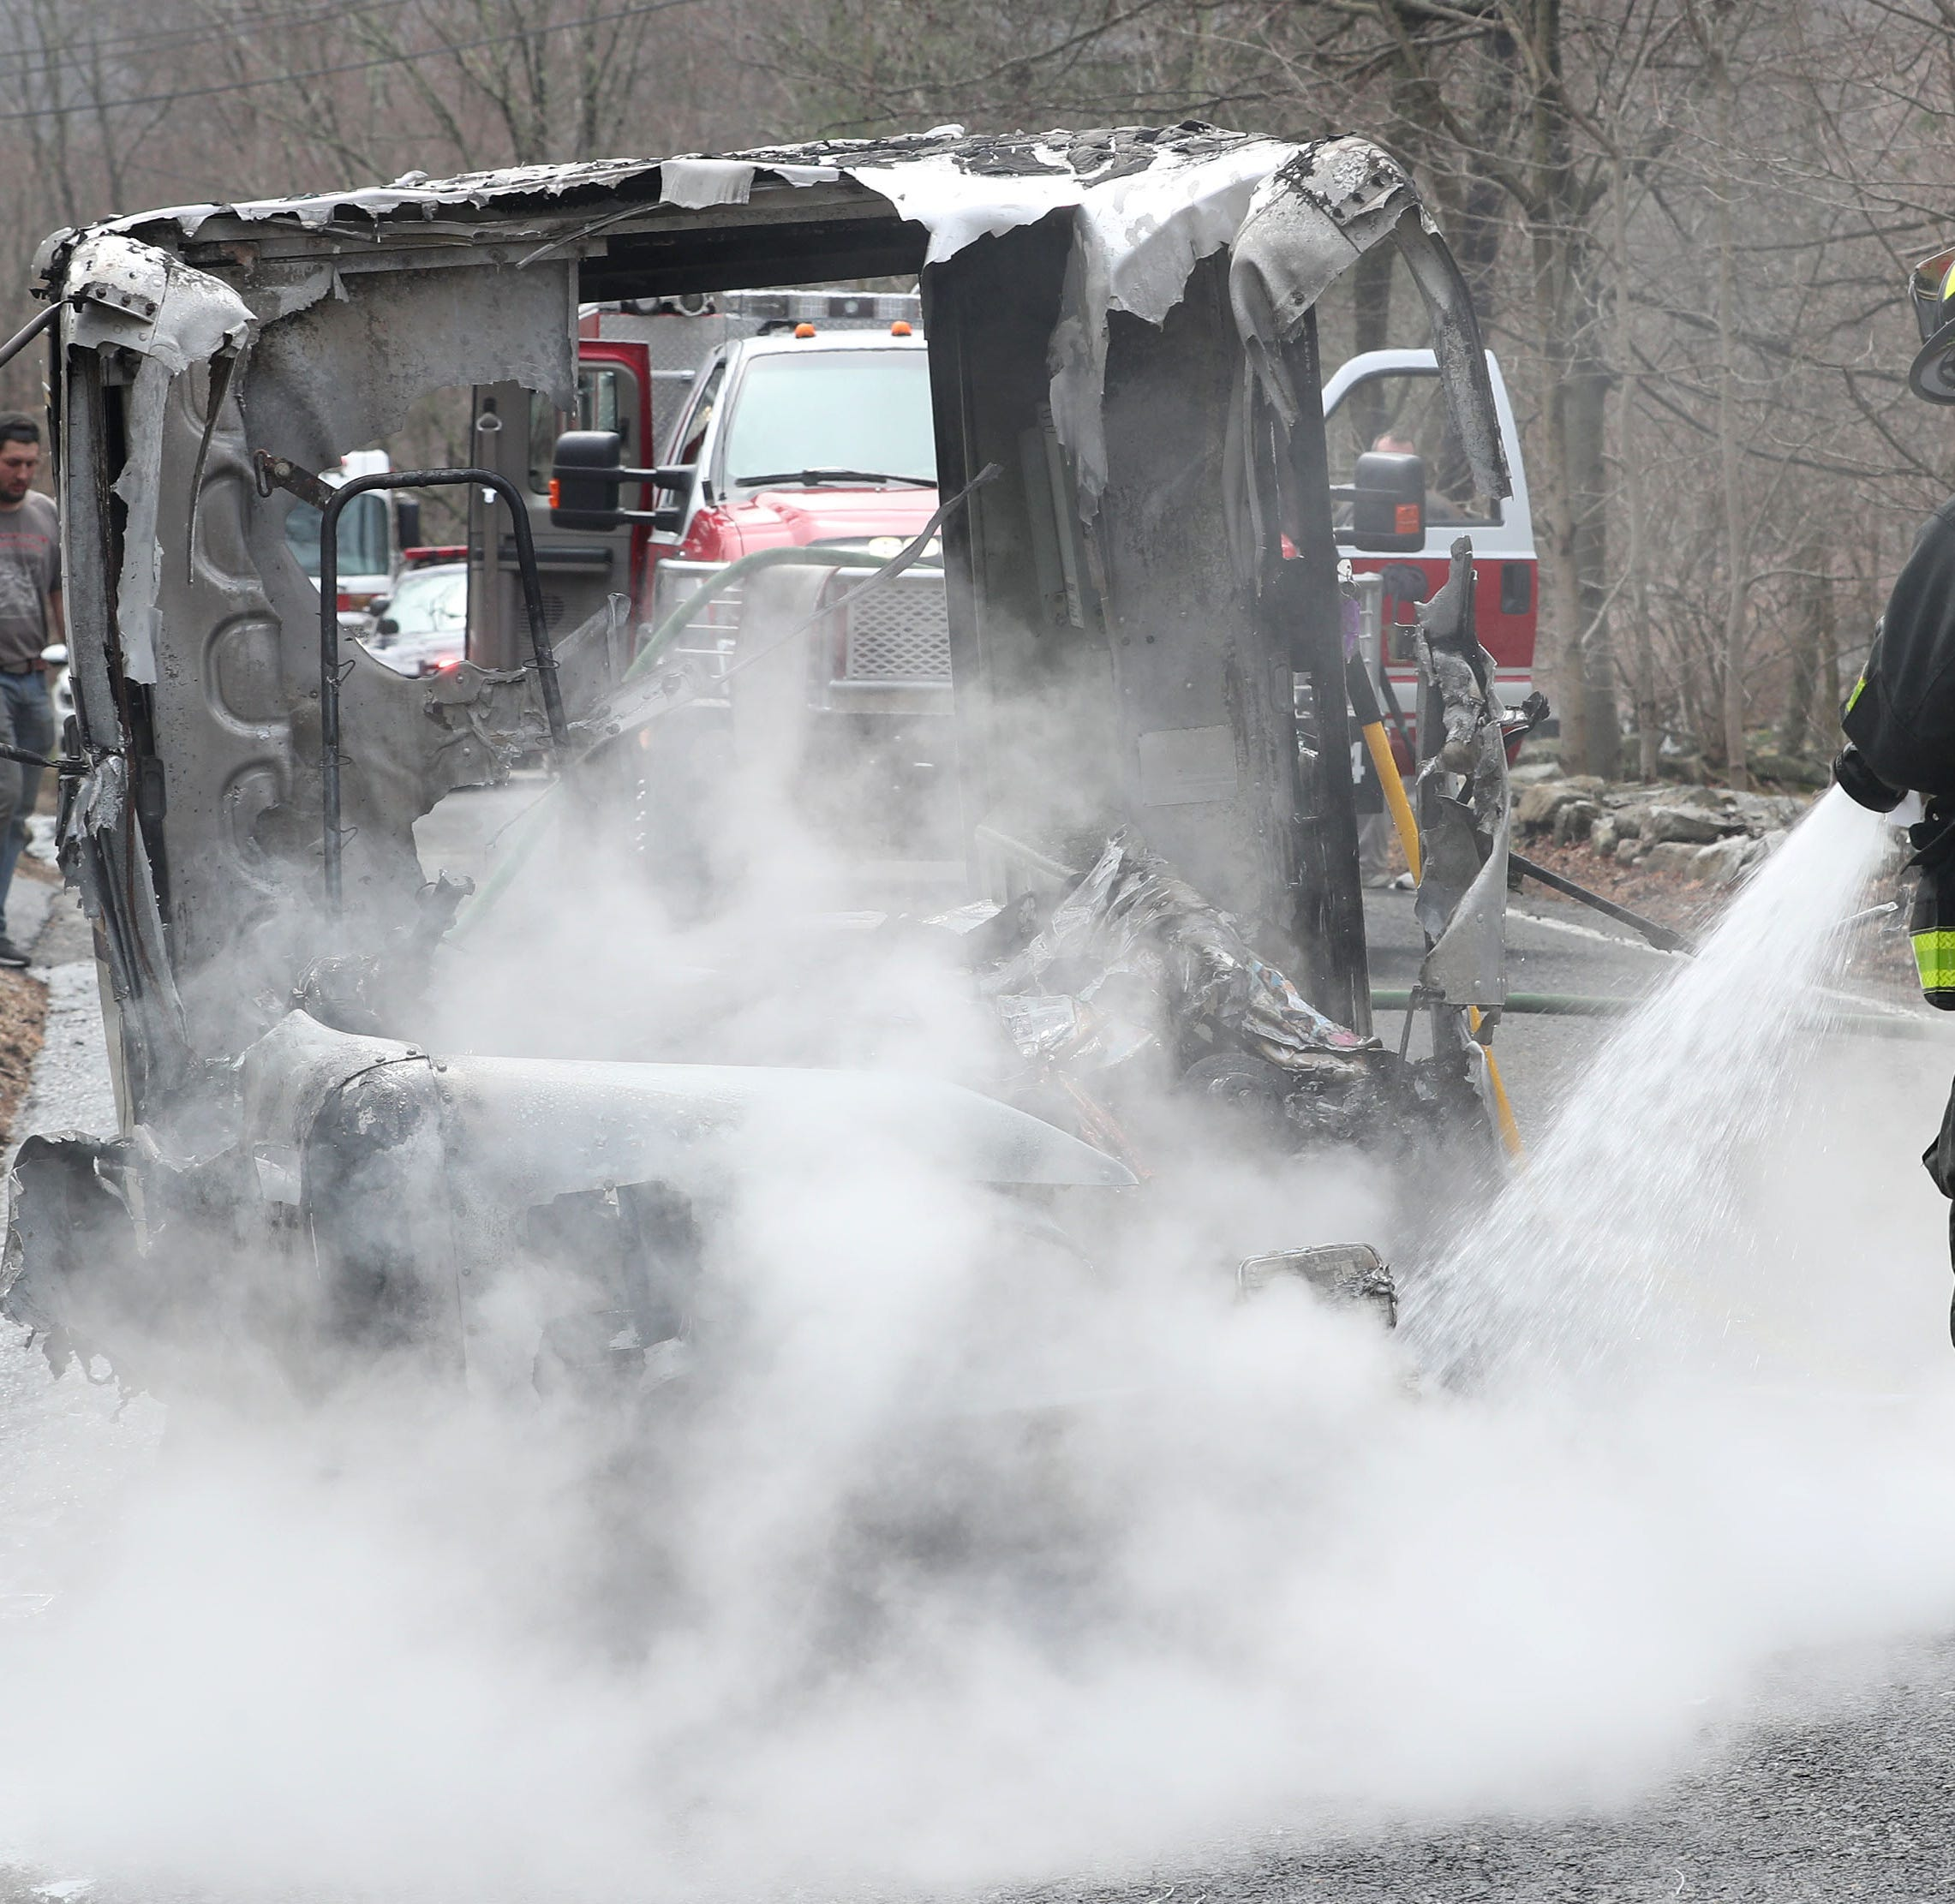 Engine fire destroys mail truck, burns some mail in Somers